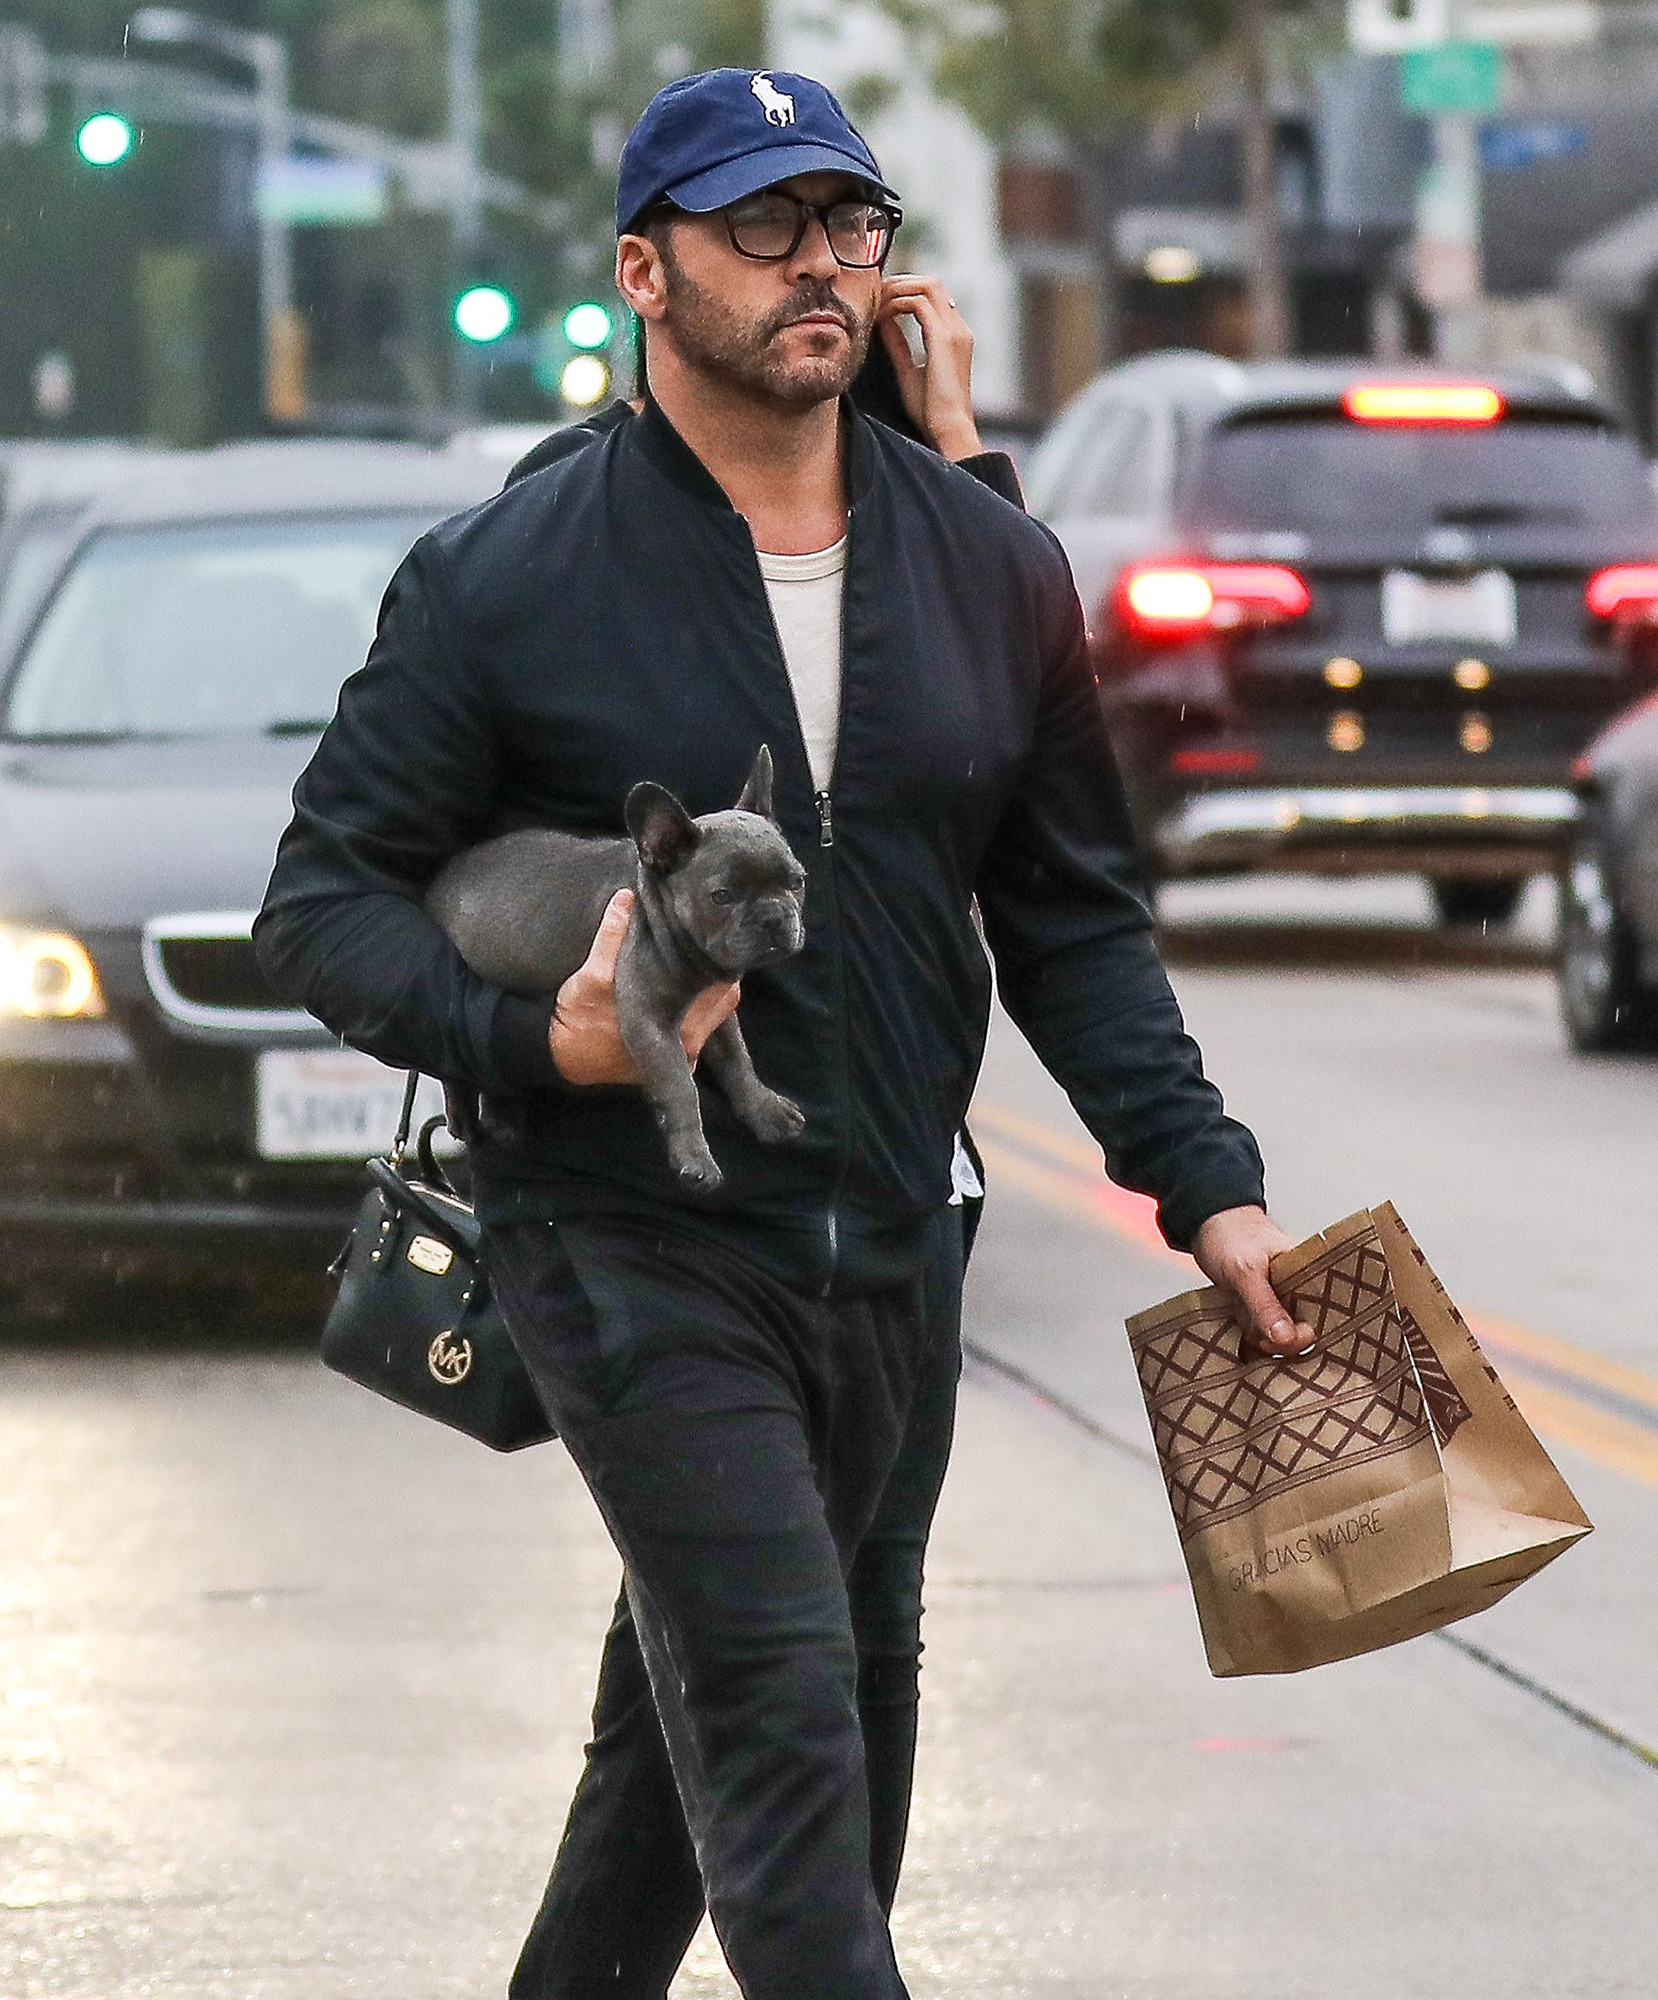 *EXCLUSIVE* Jeremy Piven brings his pup and a mystery woman along to Gracias Madre